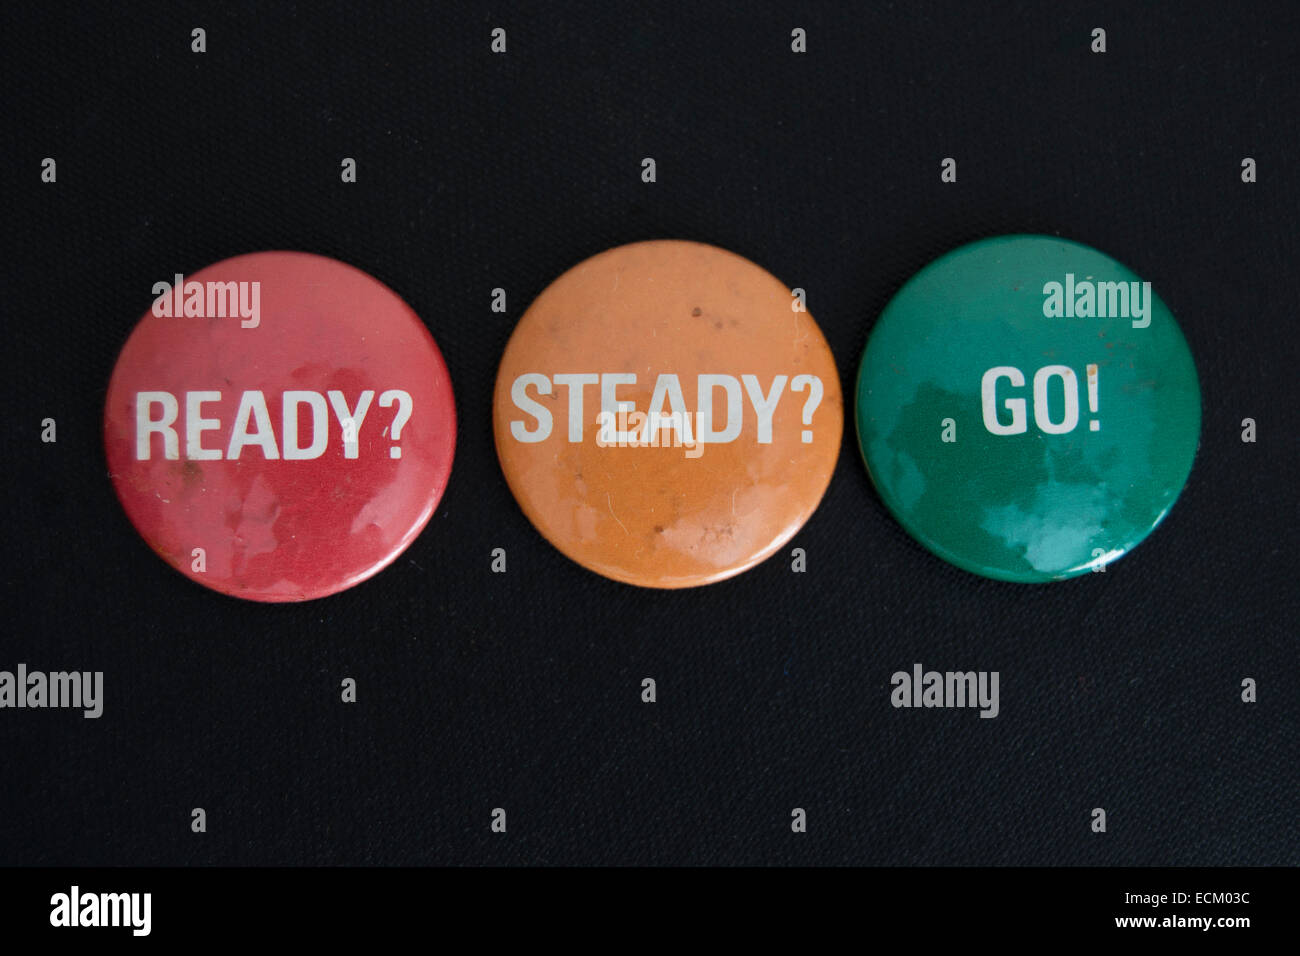 ready steady go lapel badges promoting the single of that name by 1970s british punk band generation x - Stock Image